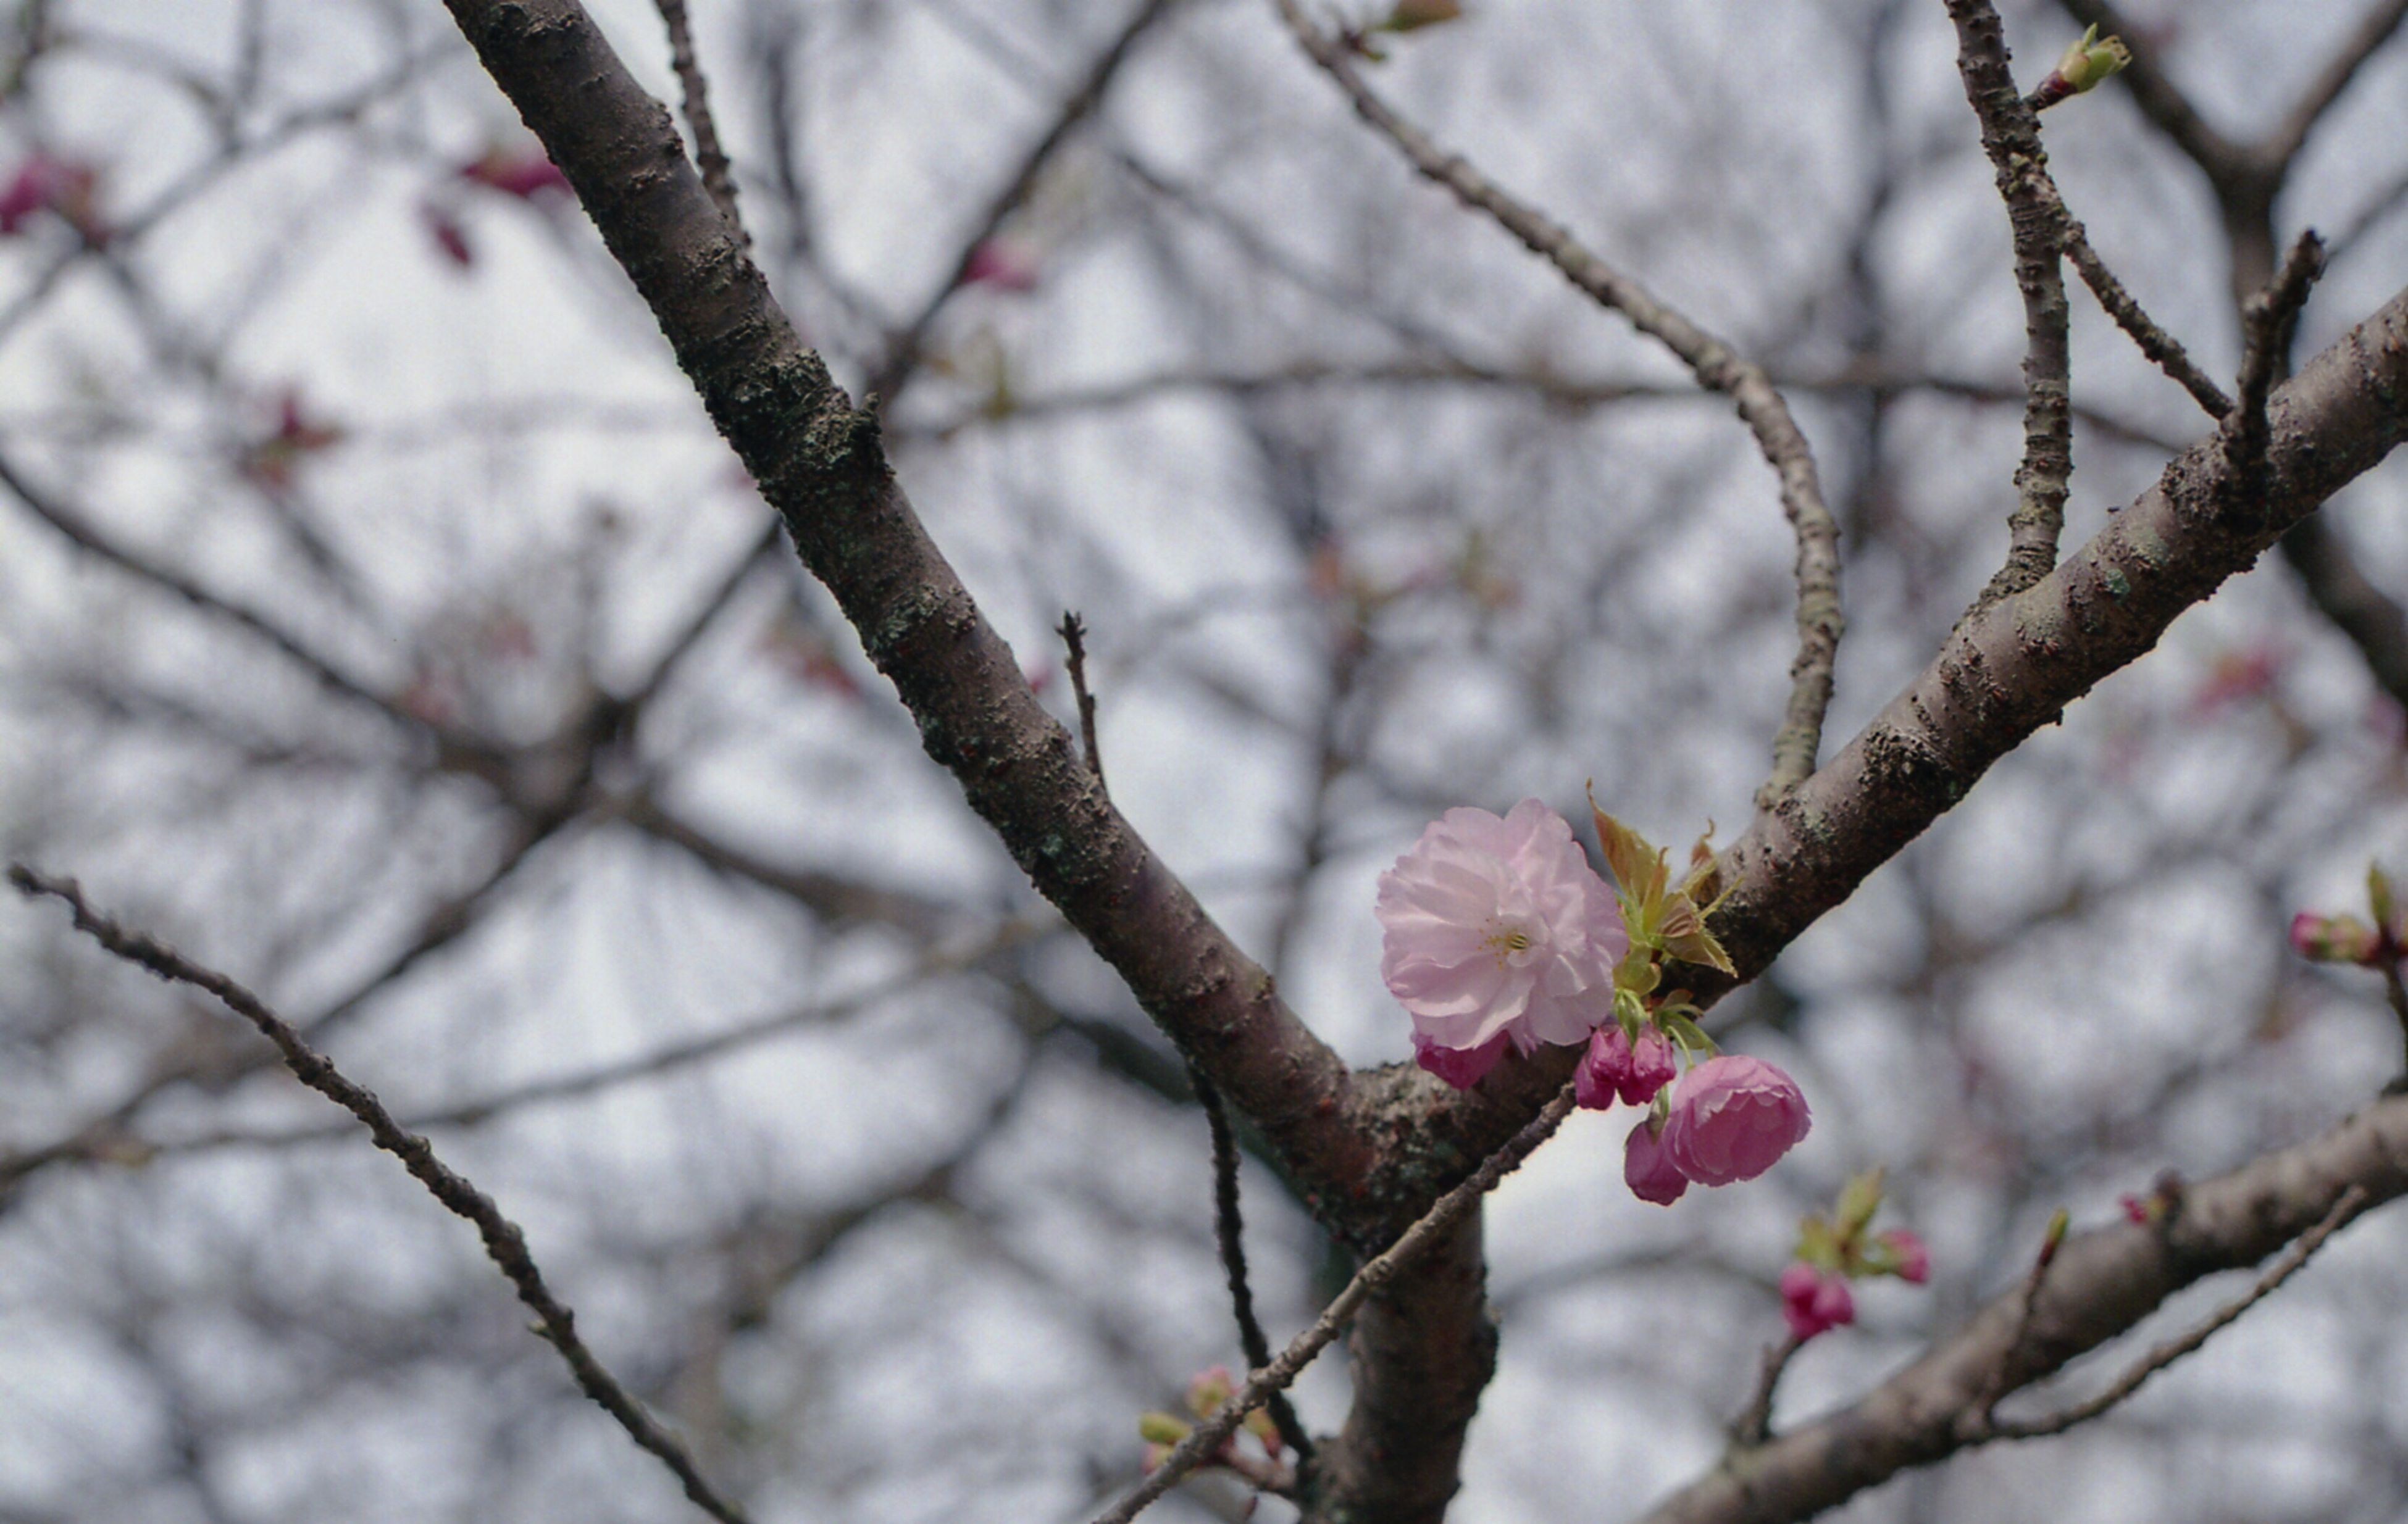 branch, tree, focus on foreground, twig, bare tree, nature, close-up, low angle view, beauty in nature, cherry blossom, growth, winter, season, flower, cherry tree, outdoors, day, no people, selective focus, fragility